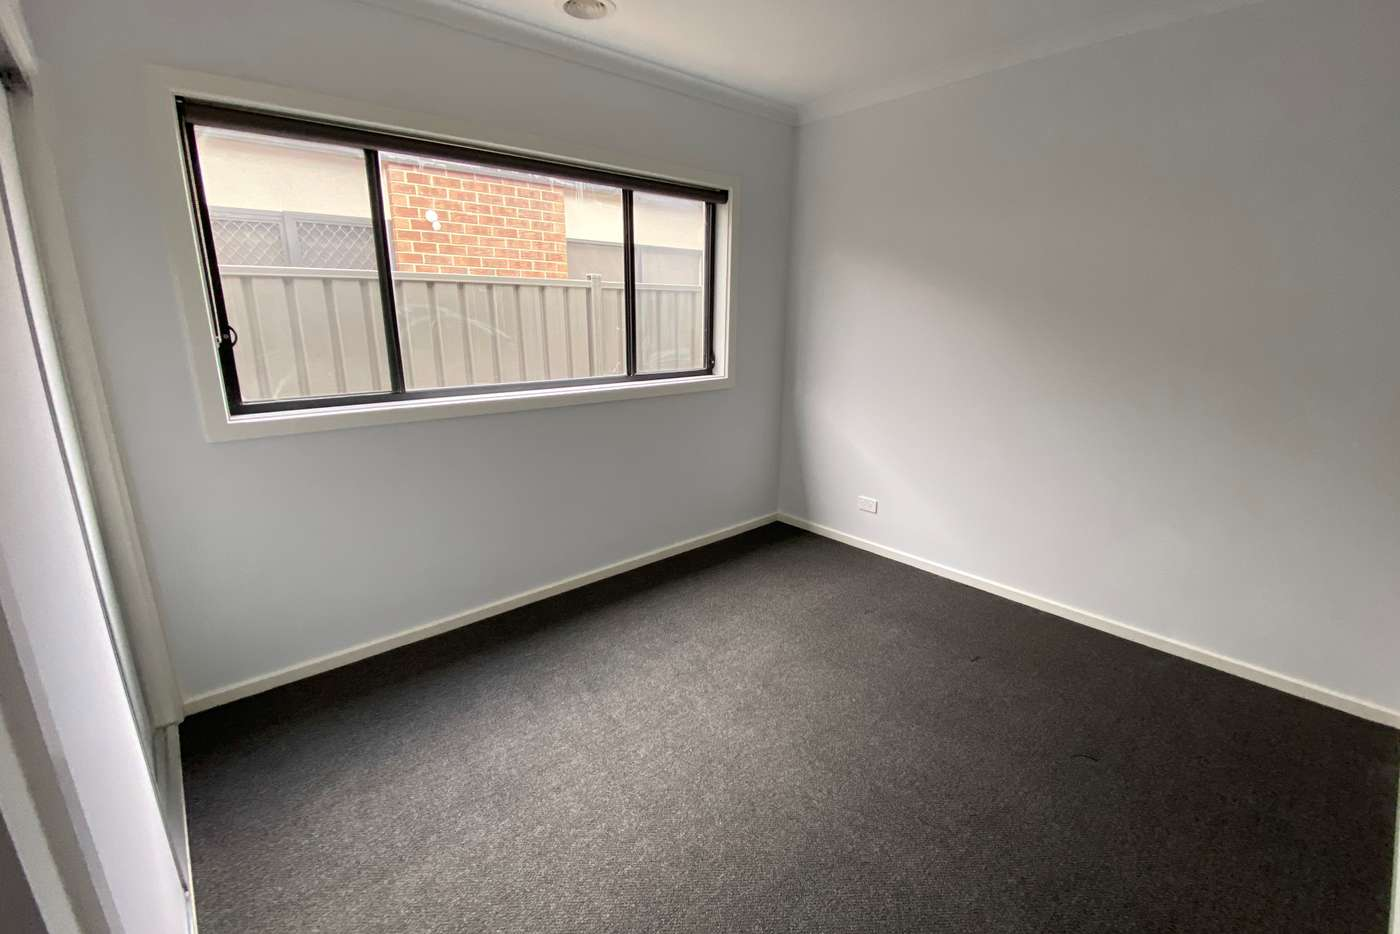 Seventh view of Homely house listing, 55 Cuttlefish Circuit, Tarneit VIC 3029